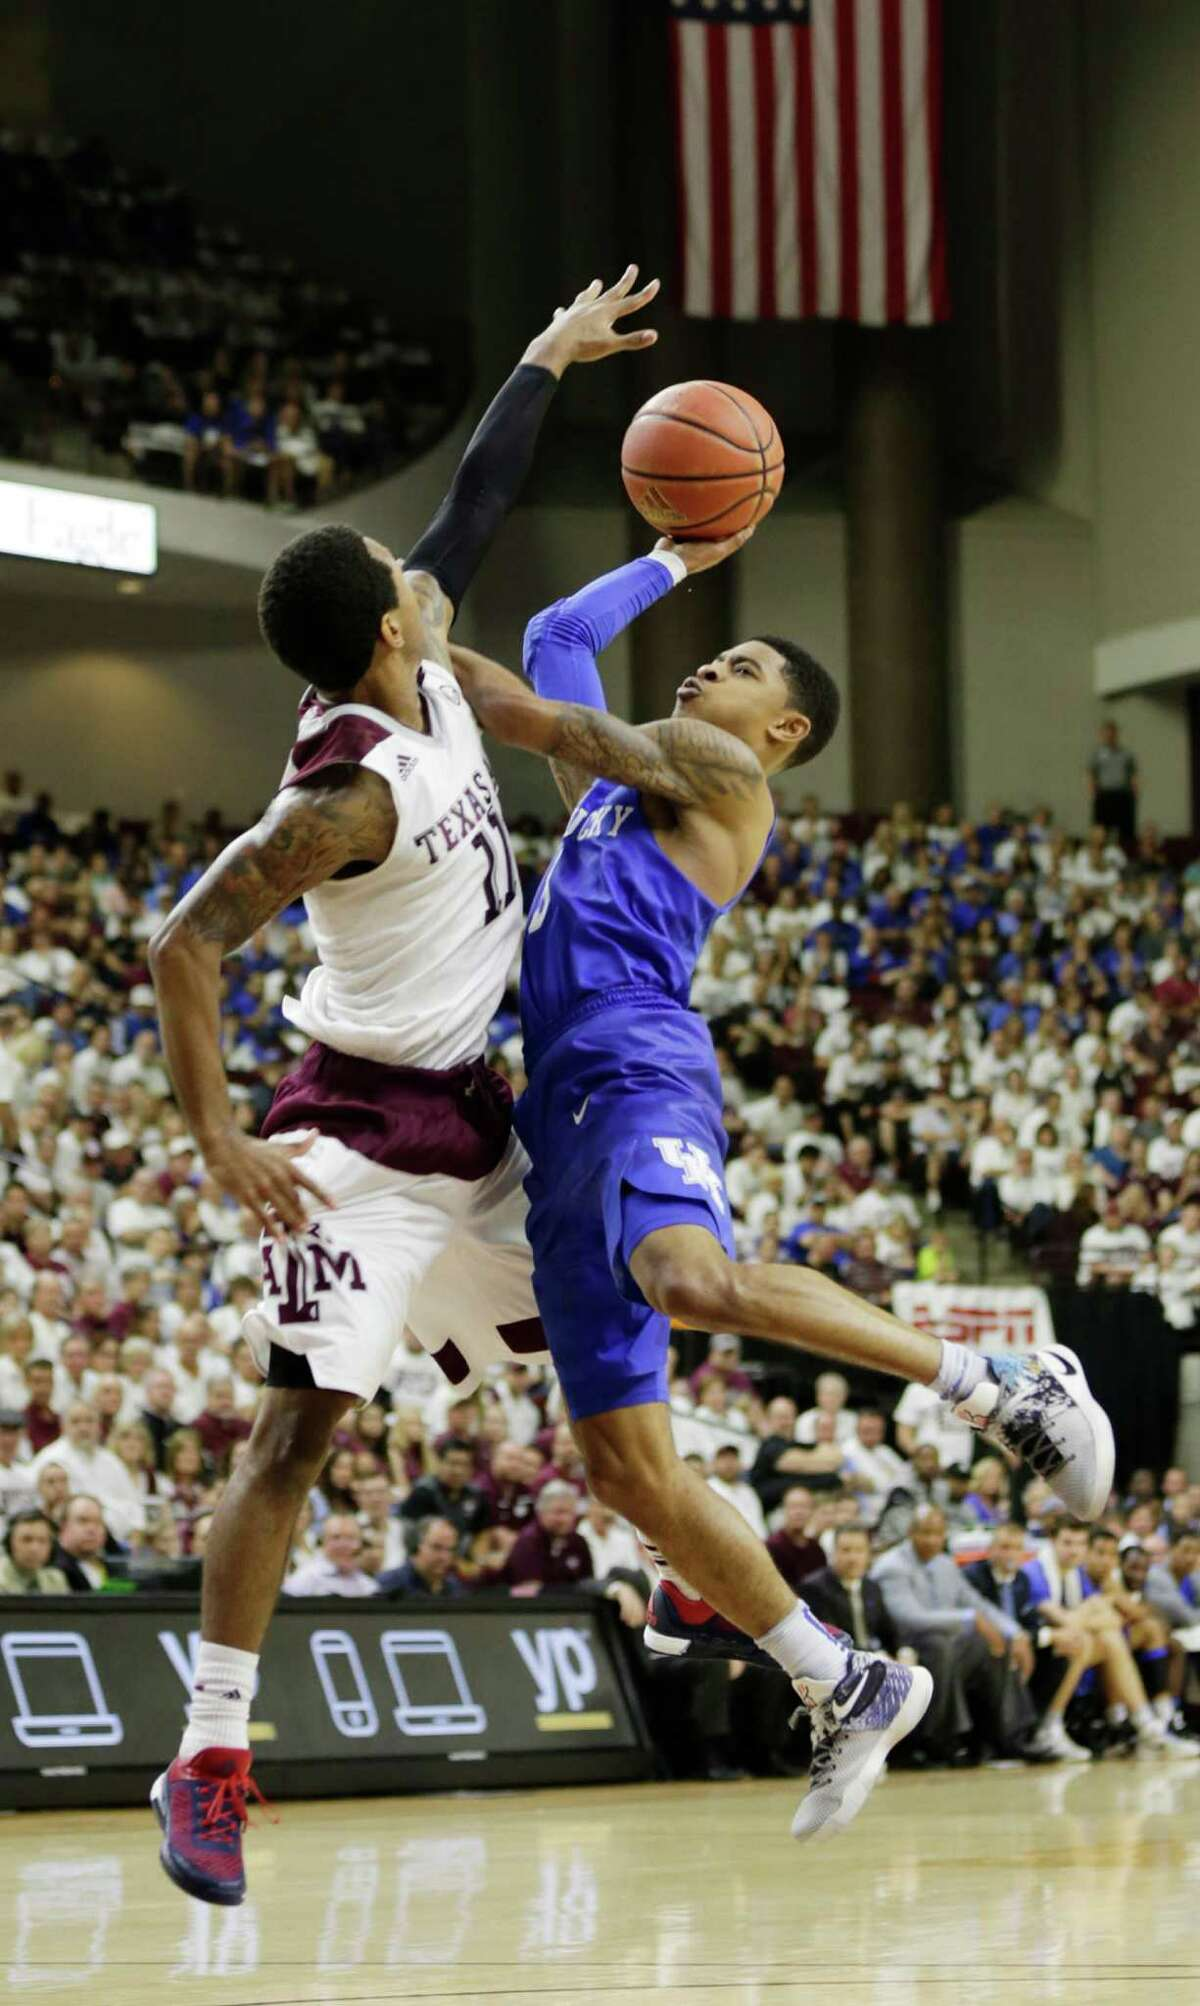 Texas A&M's Anthony Collins, left, fouls Kentucky's Tyler Ulis in the first half at Reed Arena in College Station, Texas, on Saturday, Feb. 20, 2016. The host Aggies won, 79-77, in overtime. (Pablo Alcala/Lexington Herald-Leader/TNS)